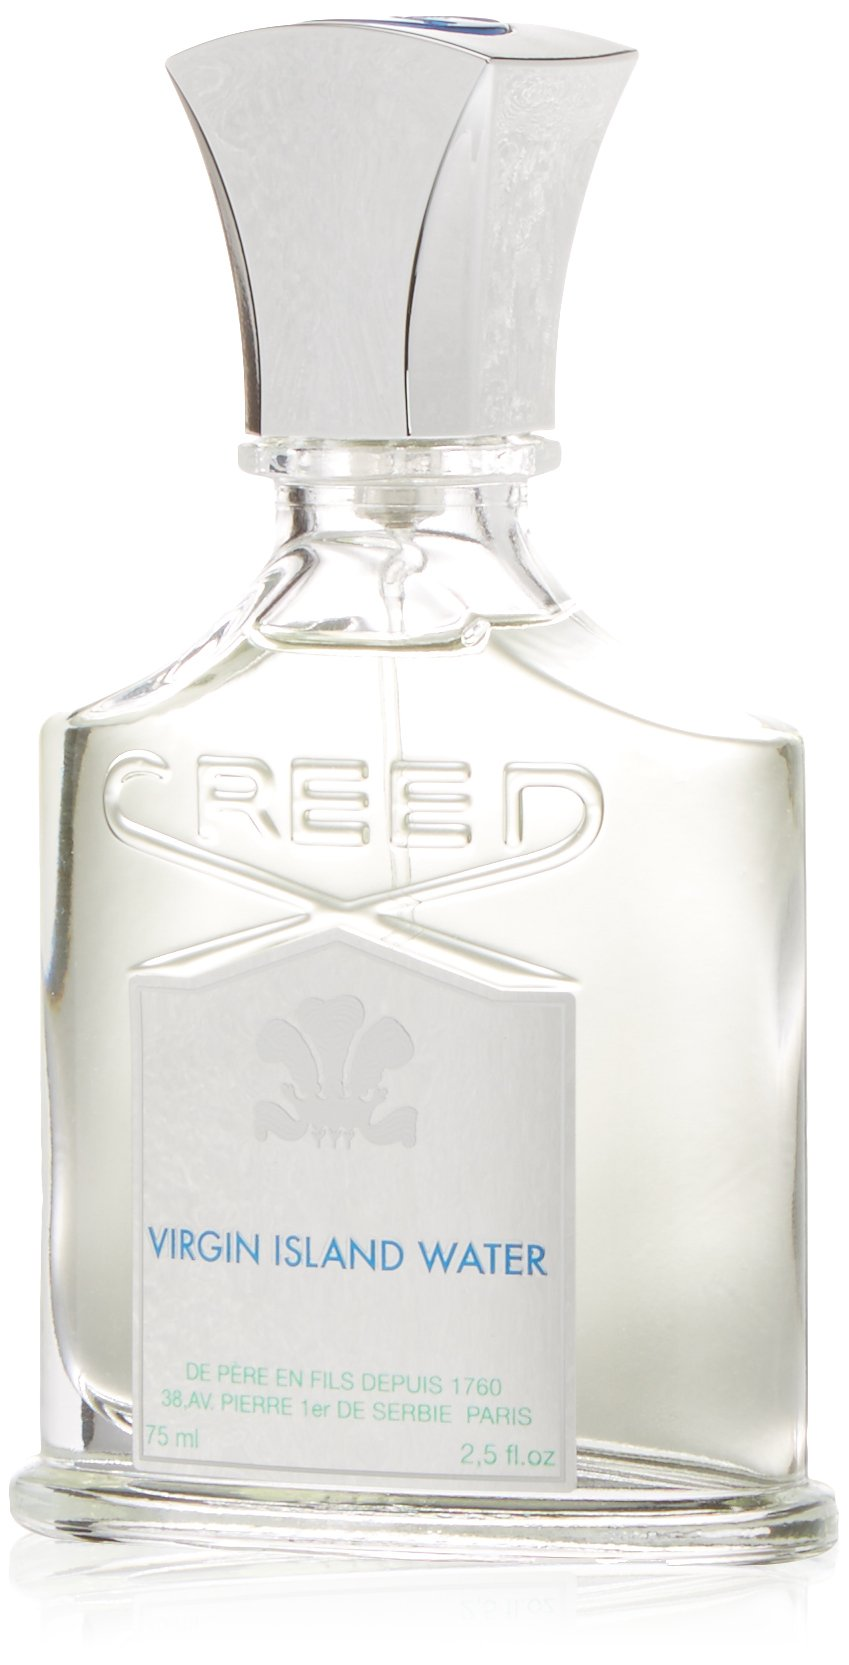 Creed Virgin Island Water Eau De Parfum Spray for Unisex, 2.5 Ounce